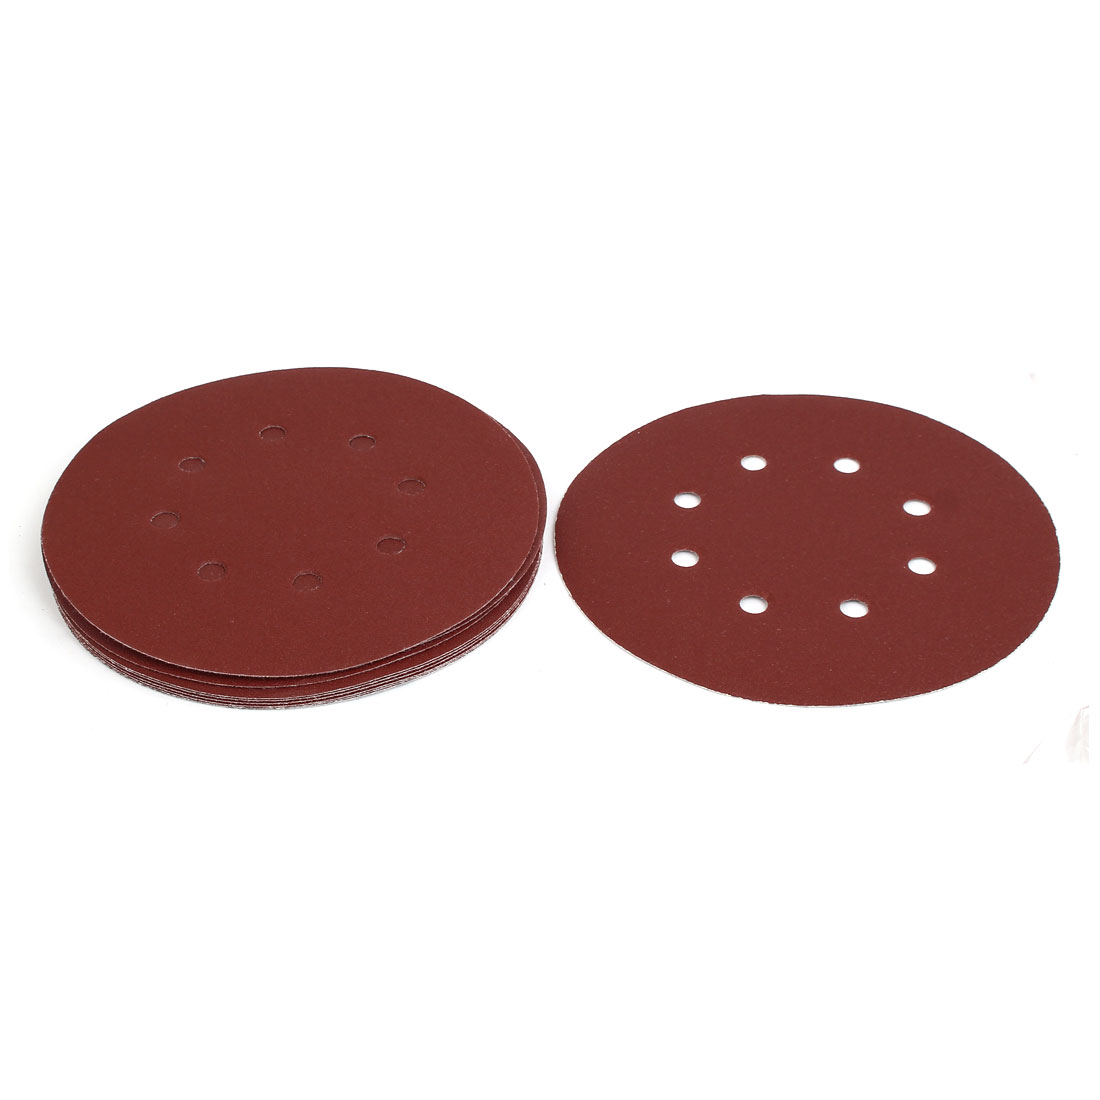 "180 Grit 8 Hole 7"" Diameter Sandpaper Hook Loop Sanding Disc 10 Pcs"